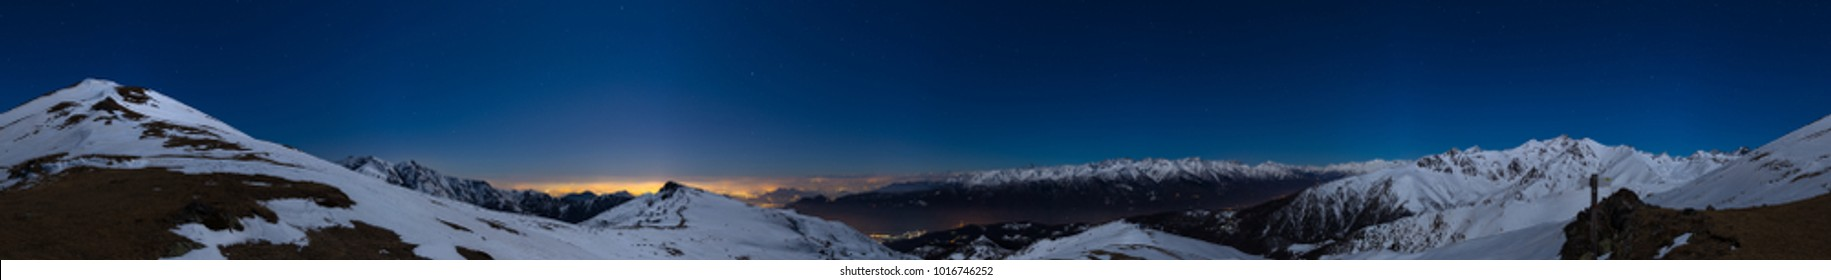 Turin city lights, night view from snow covered Alps by moonlight. Moon and Orion constellation, clear sky, 360 degree panorama. Italy.